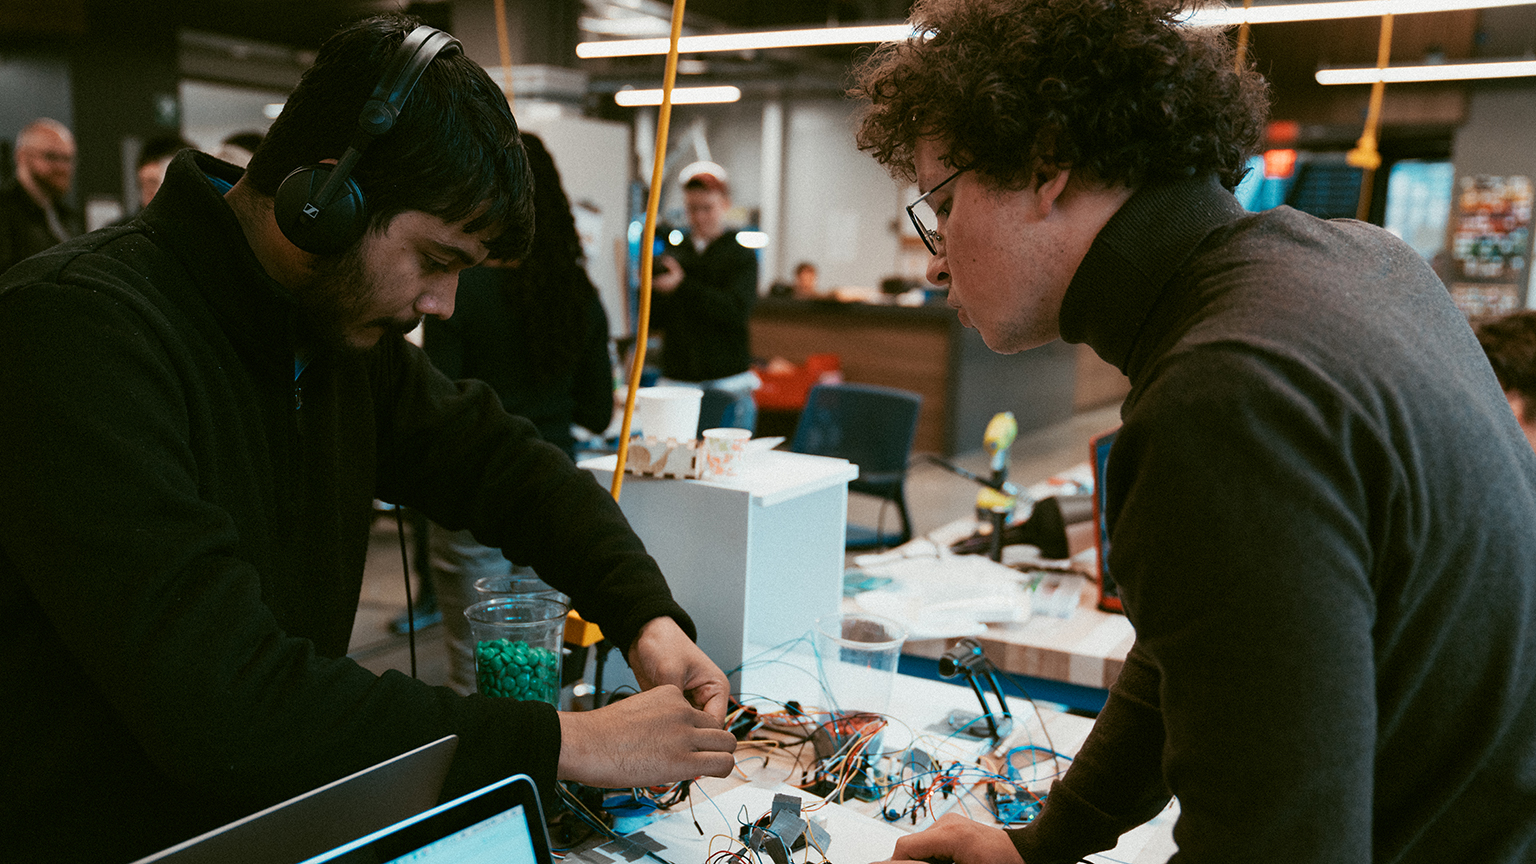 Two graduate students working on a project at a hackathon.